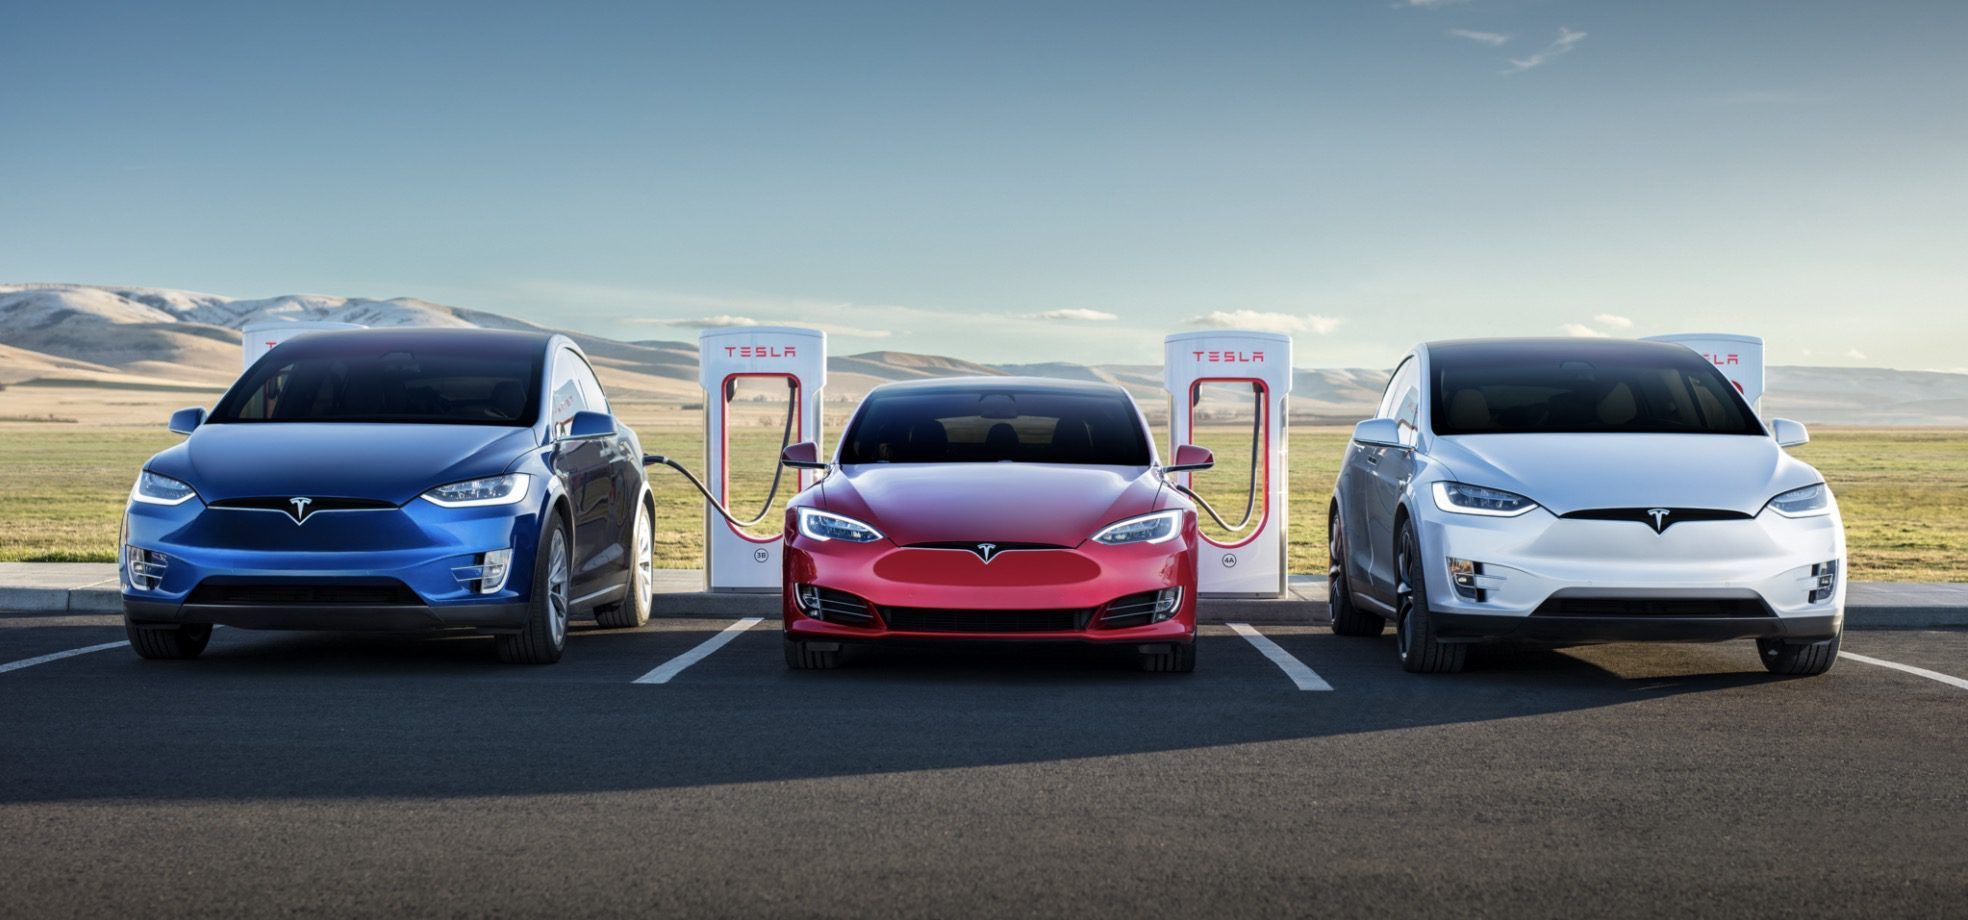 Tesla Unlocks Even More Power 150 Kw Out Of Existing Superchargers Expands Rollout Https T Co Reio4yjdly Electric Cars Tesla For Sale Electric Car Charging